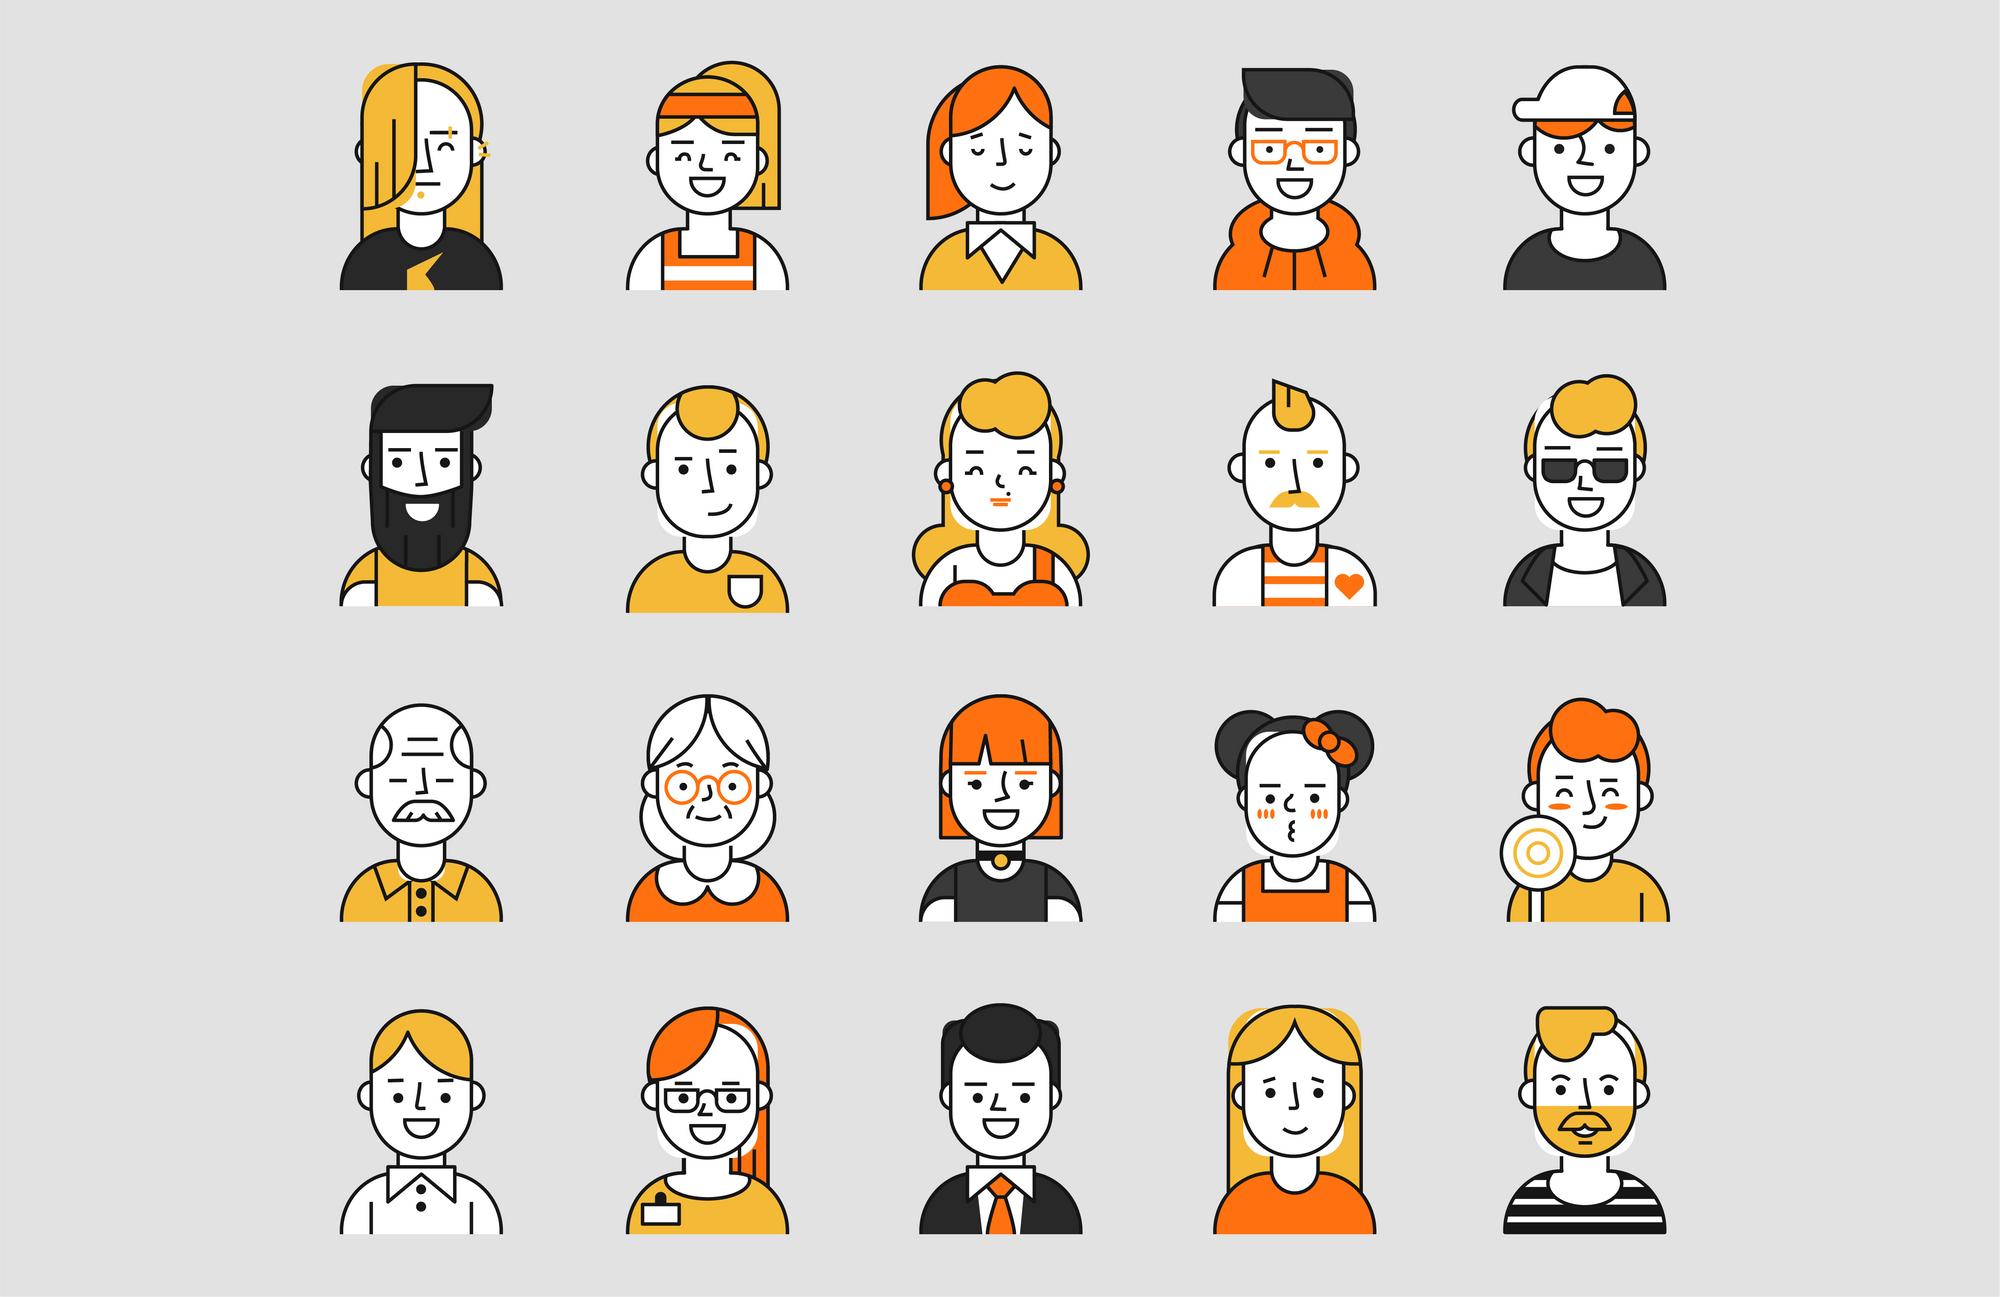 Part 2: How to create a user persona